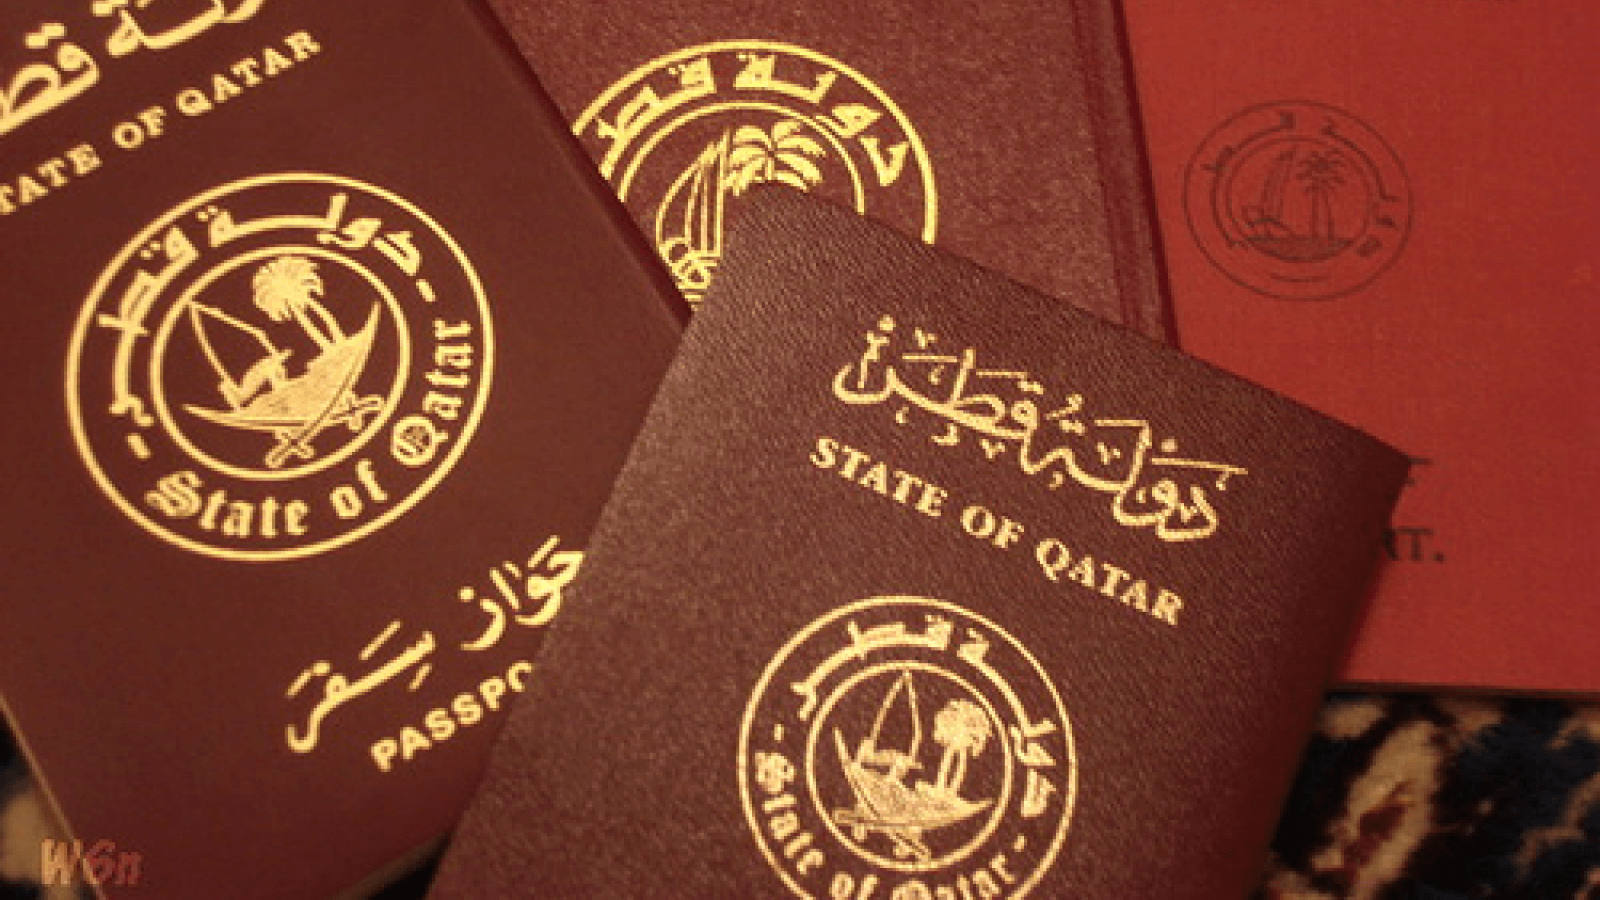 What happens if Qatar citizens overstay Vietnam visa?